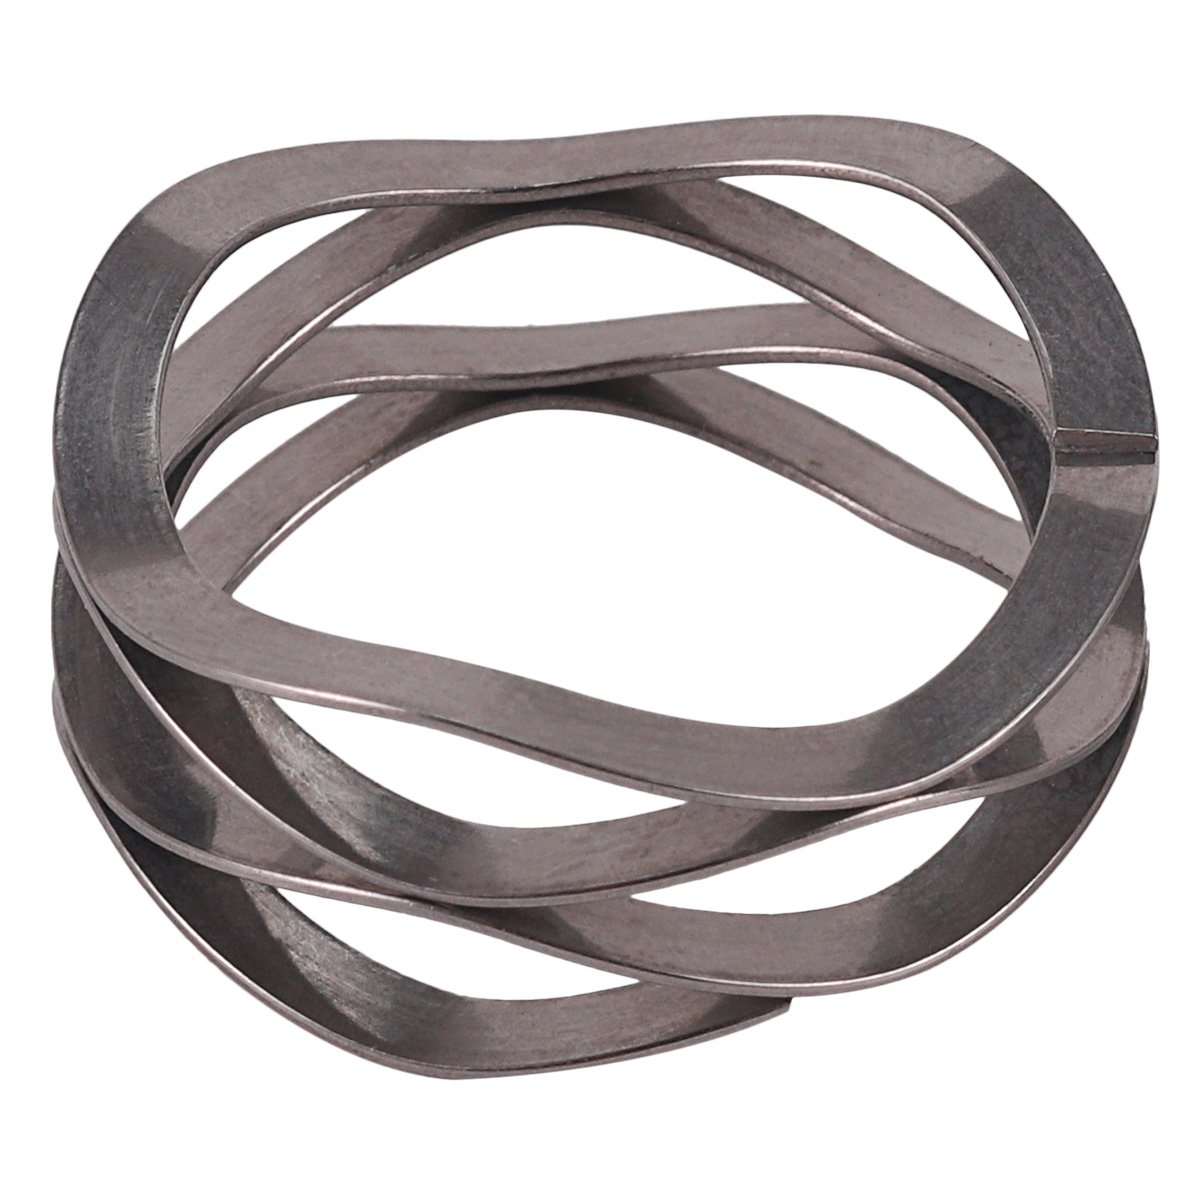 157lbs//in Spring Rate Multiwave Washers,Stainless/_Steel/_17-7/_PH,C100-H2,LW 100 25 0333S 0.73 ID 1 OD 0.015 Thick 25lbs Load Capacity@Spring height0.17 Pack of 5 0.015 Thick 0.73 ID Polished,Inch 25lbs Load Capacity@Spring height0.17, 1 OD